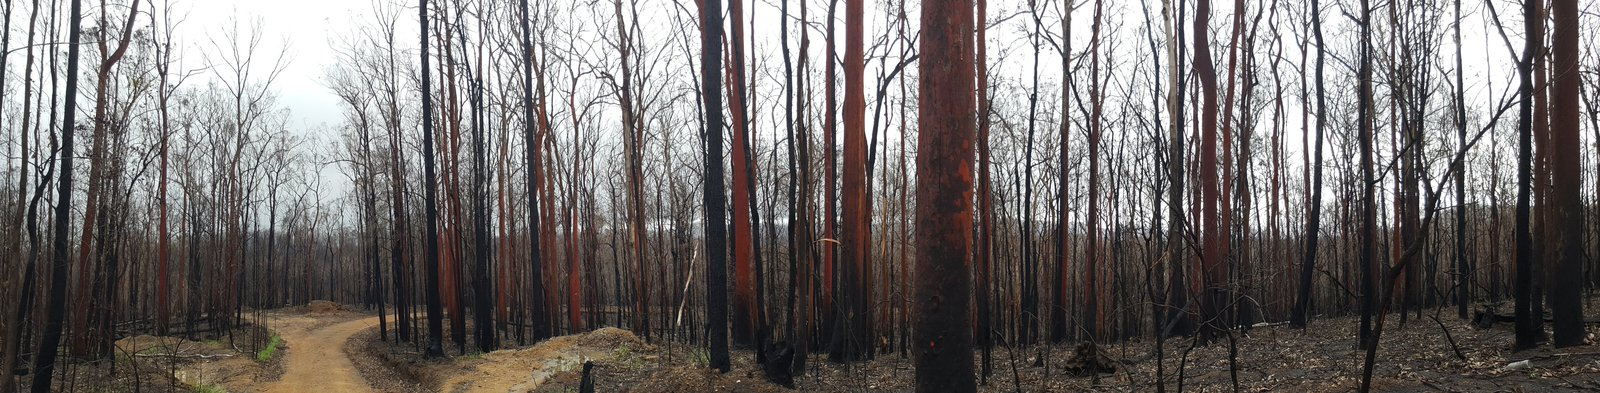 This was the cover photo for the Royal Zoological Society of NSW forum flyer. Three months after extensive, high severity fire in Kiwarrack State Forest, near Taree. Most of these trees have subsequently resprouted via epicormic buds.